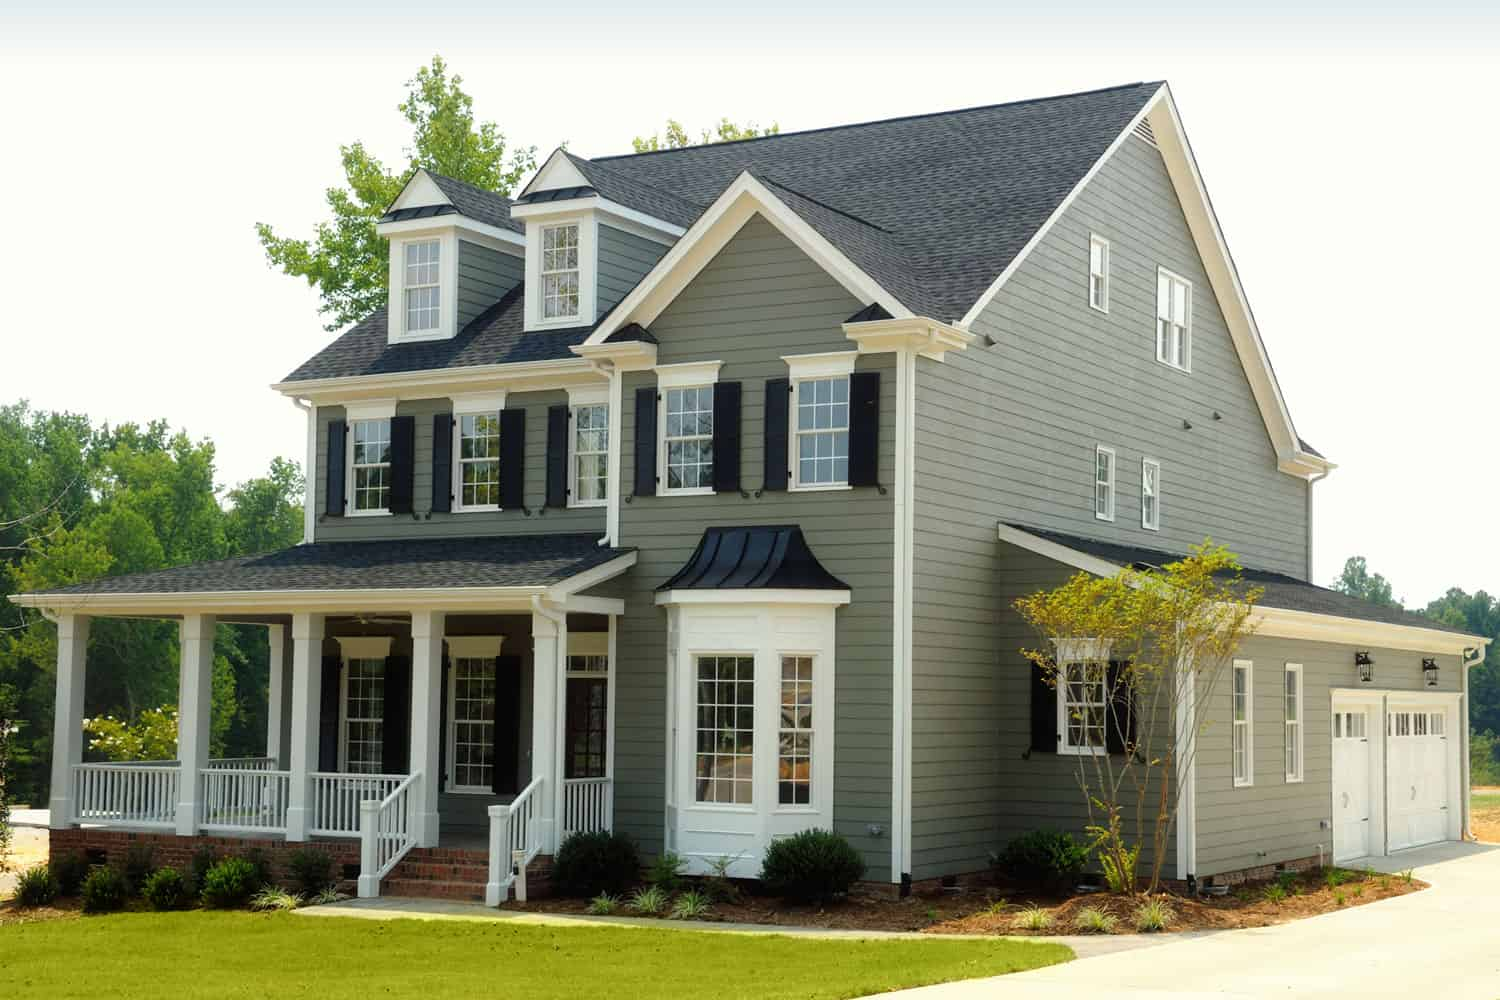 Beautiful two story suburban home with attached garage